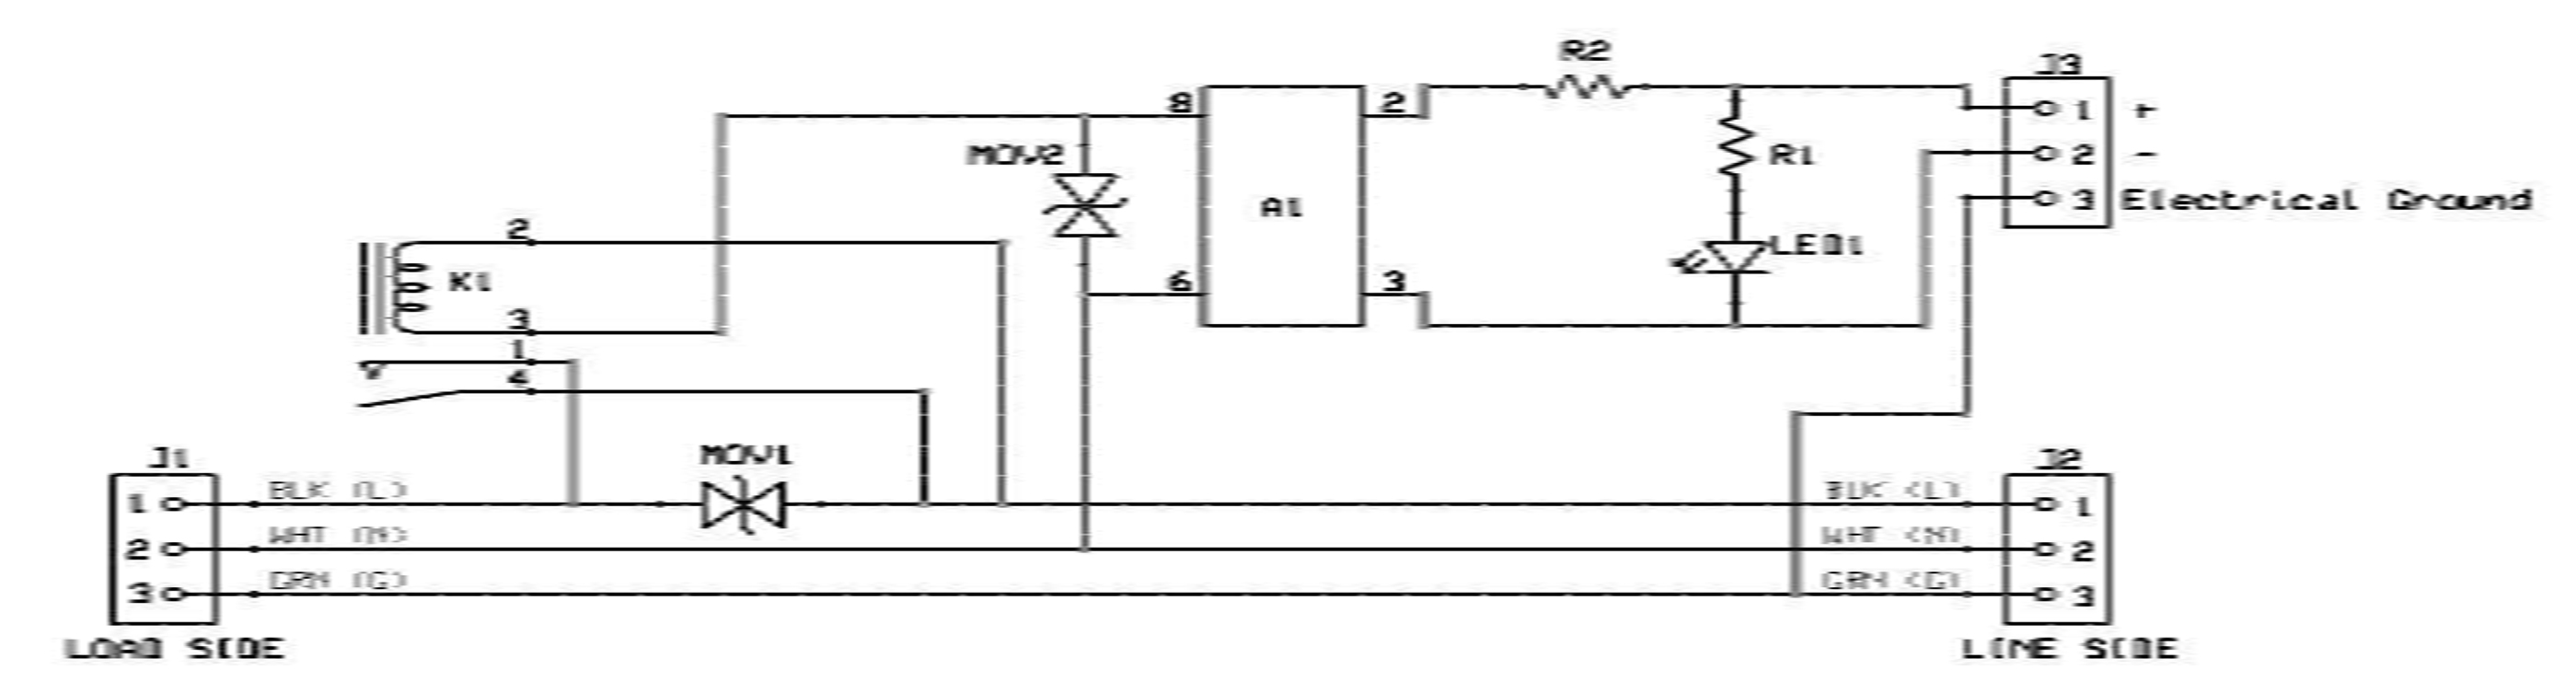 Drivers Relays And Solid State Mbed Mosfet Tester Circuit Diagram Power Switch Tail Ii Schematic